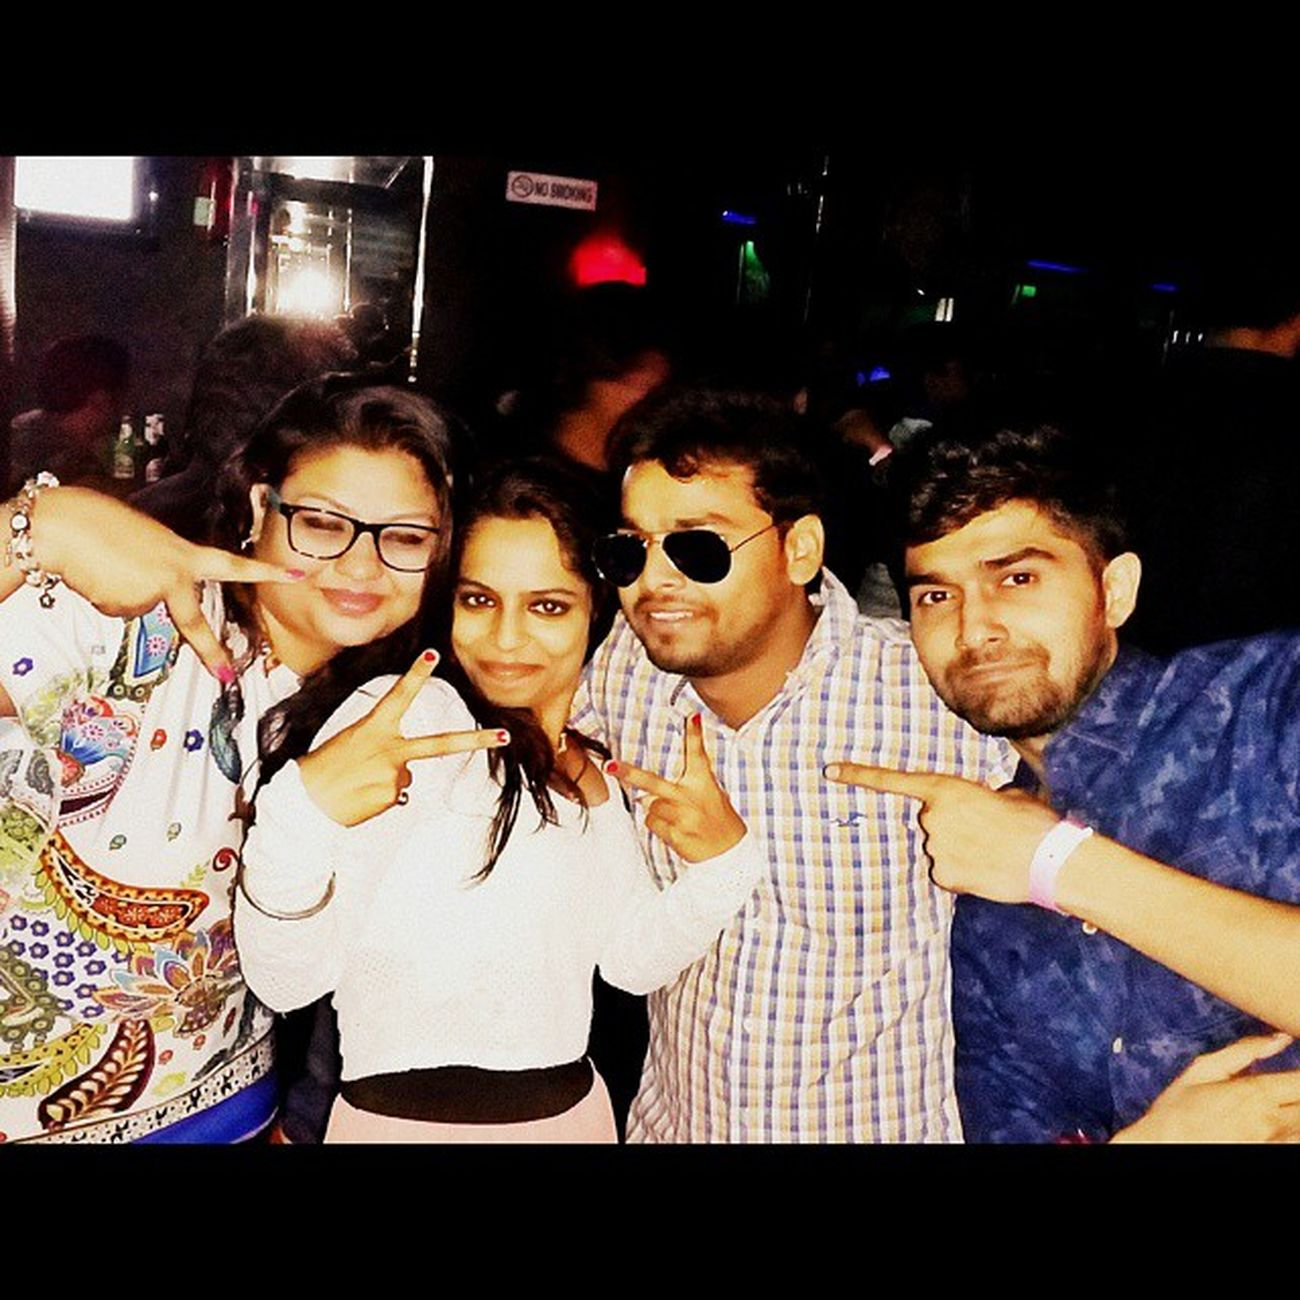 Freinds Freindsforever Rpm Birthdaygirl Bashparty Food Music Dance VasantVihar Rpm Togetherforever Memorableday Fukrey Godblessgirl Peace Lovelife Loveinstagram Instafollow Tags